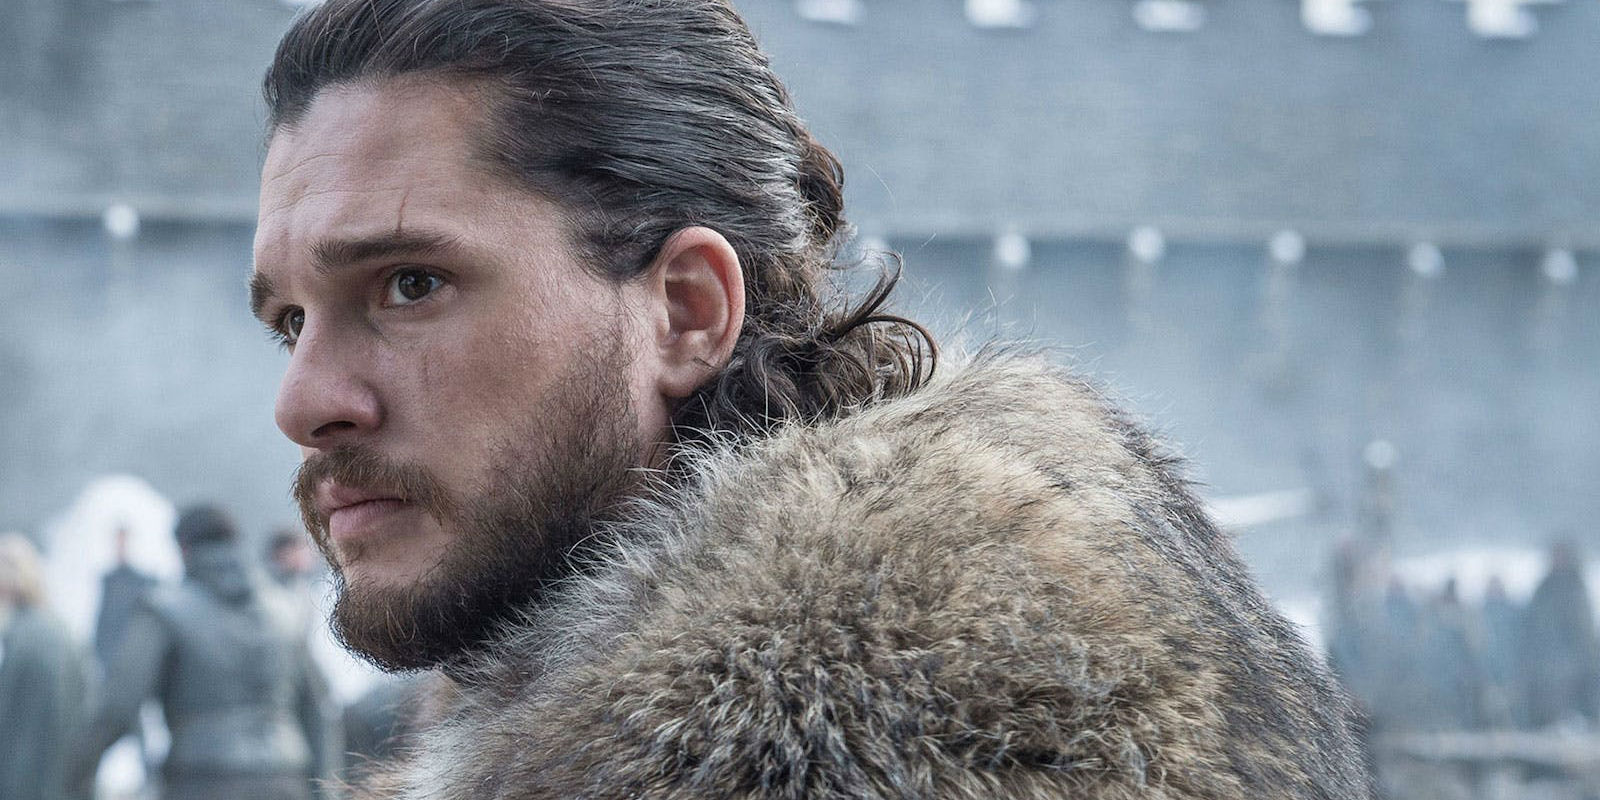 Kit-Harington-as-Jon-Snow-in-Game-of-Thrones-season-8.jpg